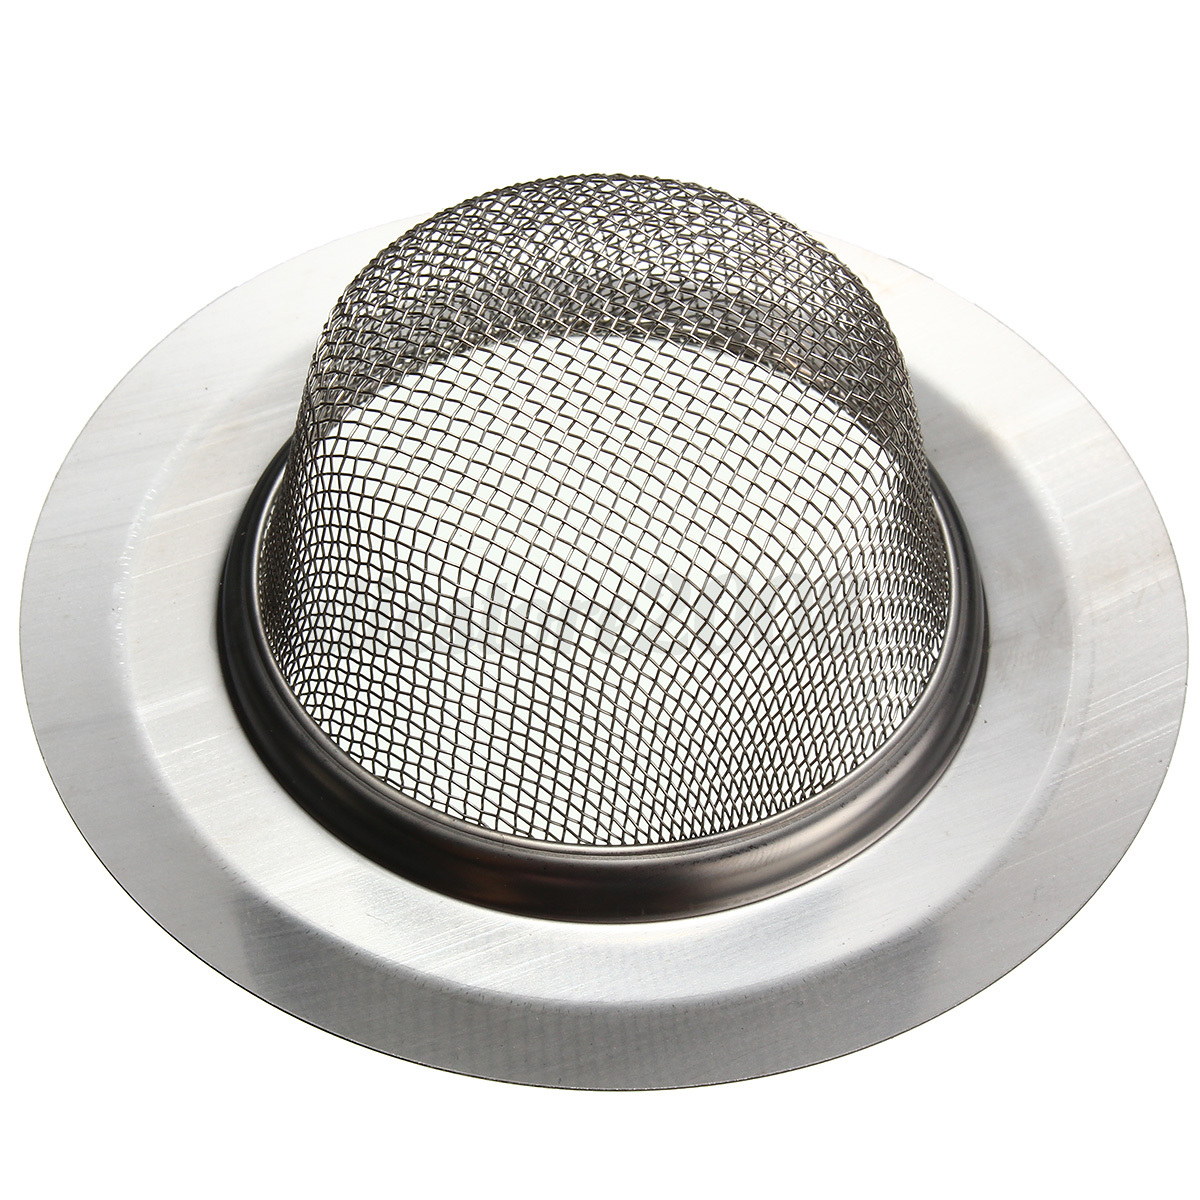 2pcs Home Kitchen 4 5 Quot Stainless Steel Sink Drain Strainer